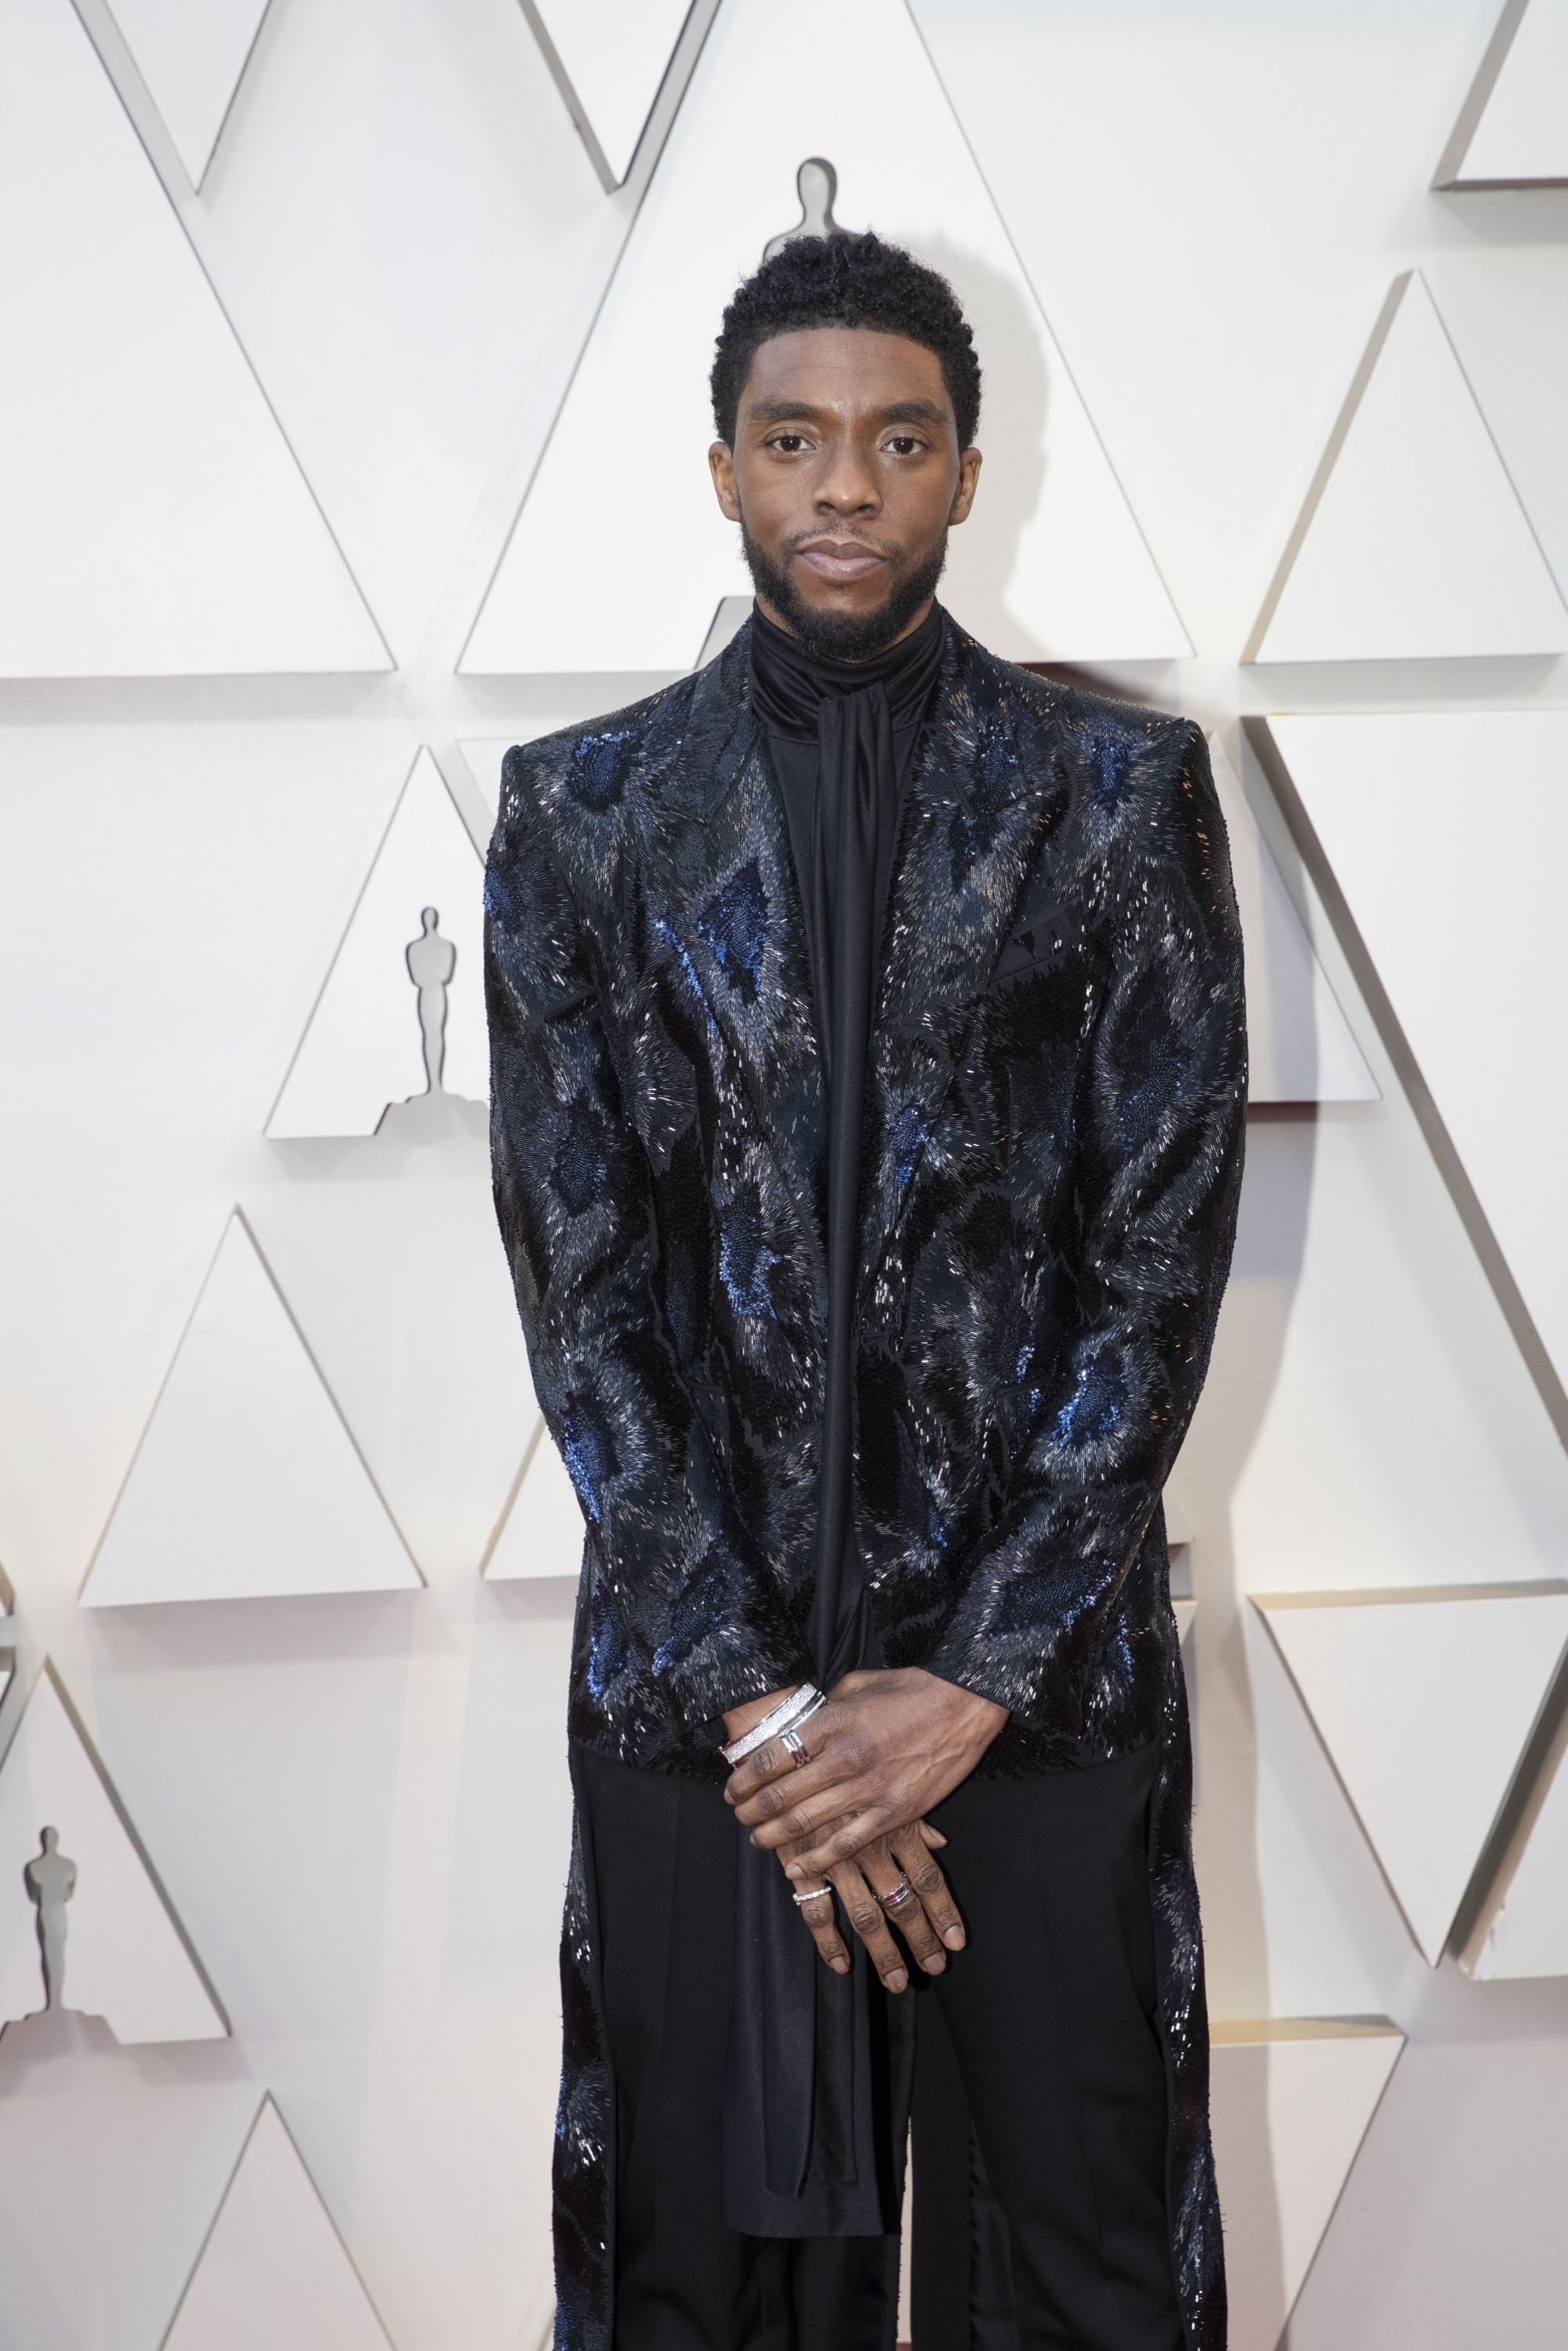 Chadwick Boseman: Red Carpet from the The 91st Oscar broadcast on Sunday, Feb. 24, 2019, at the Dolby Theatre.